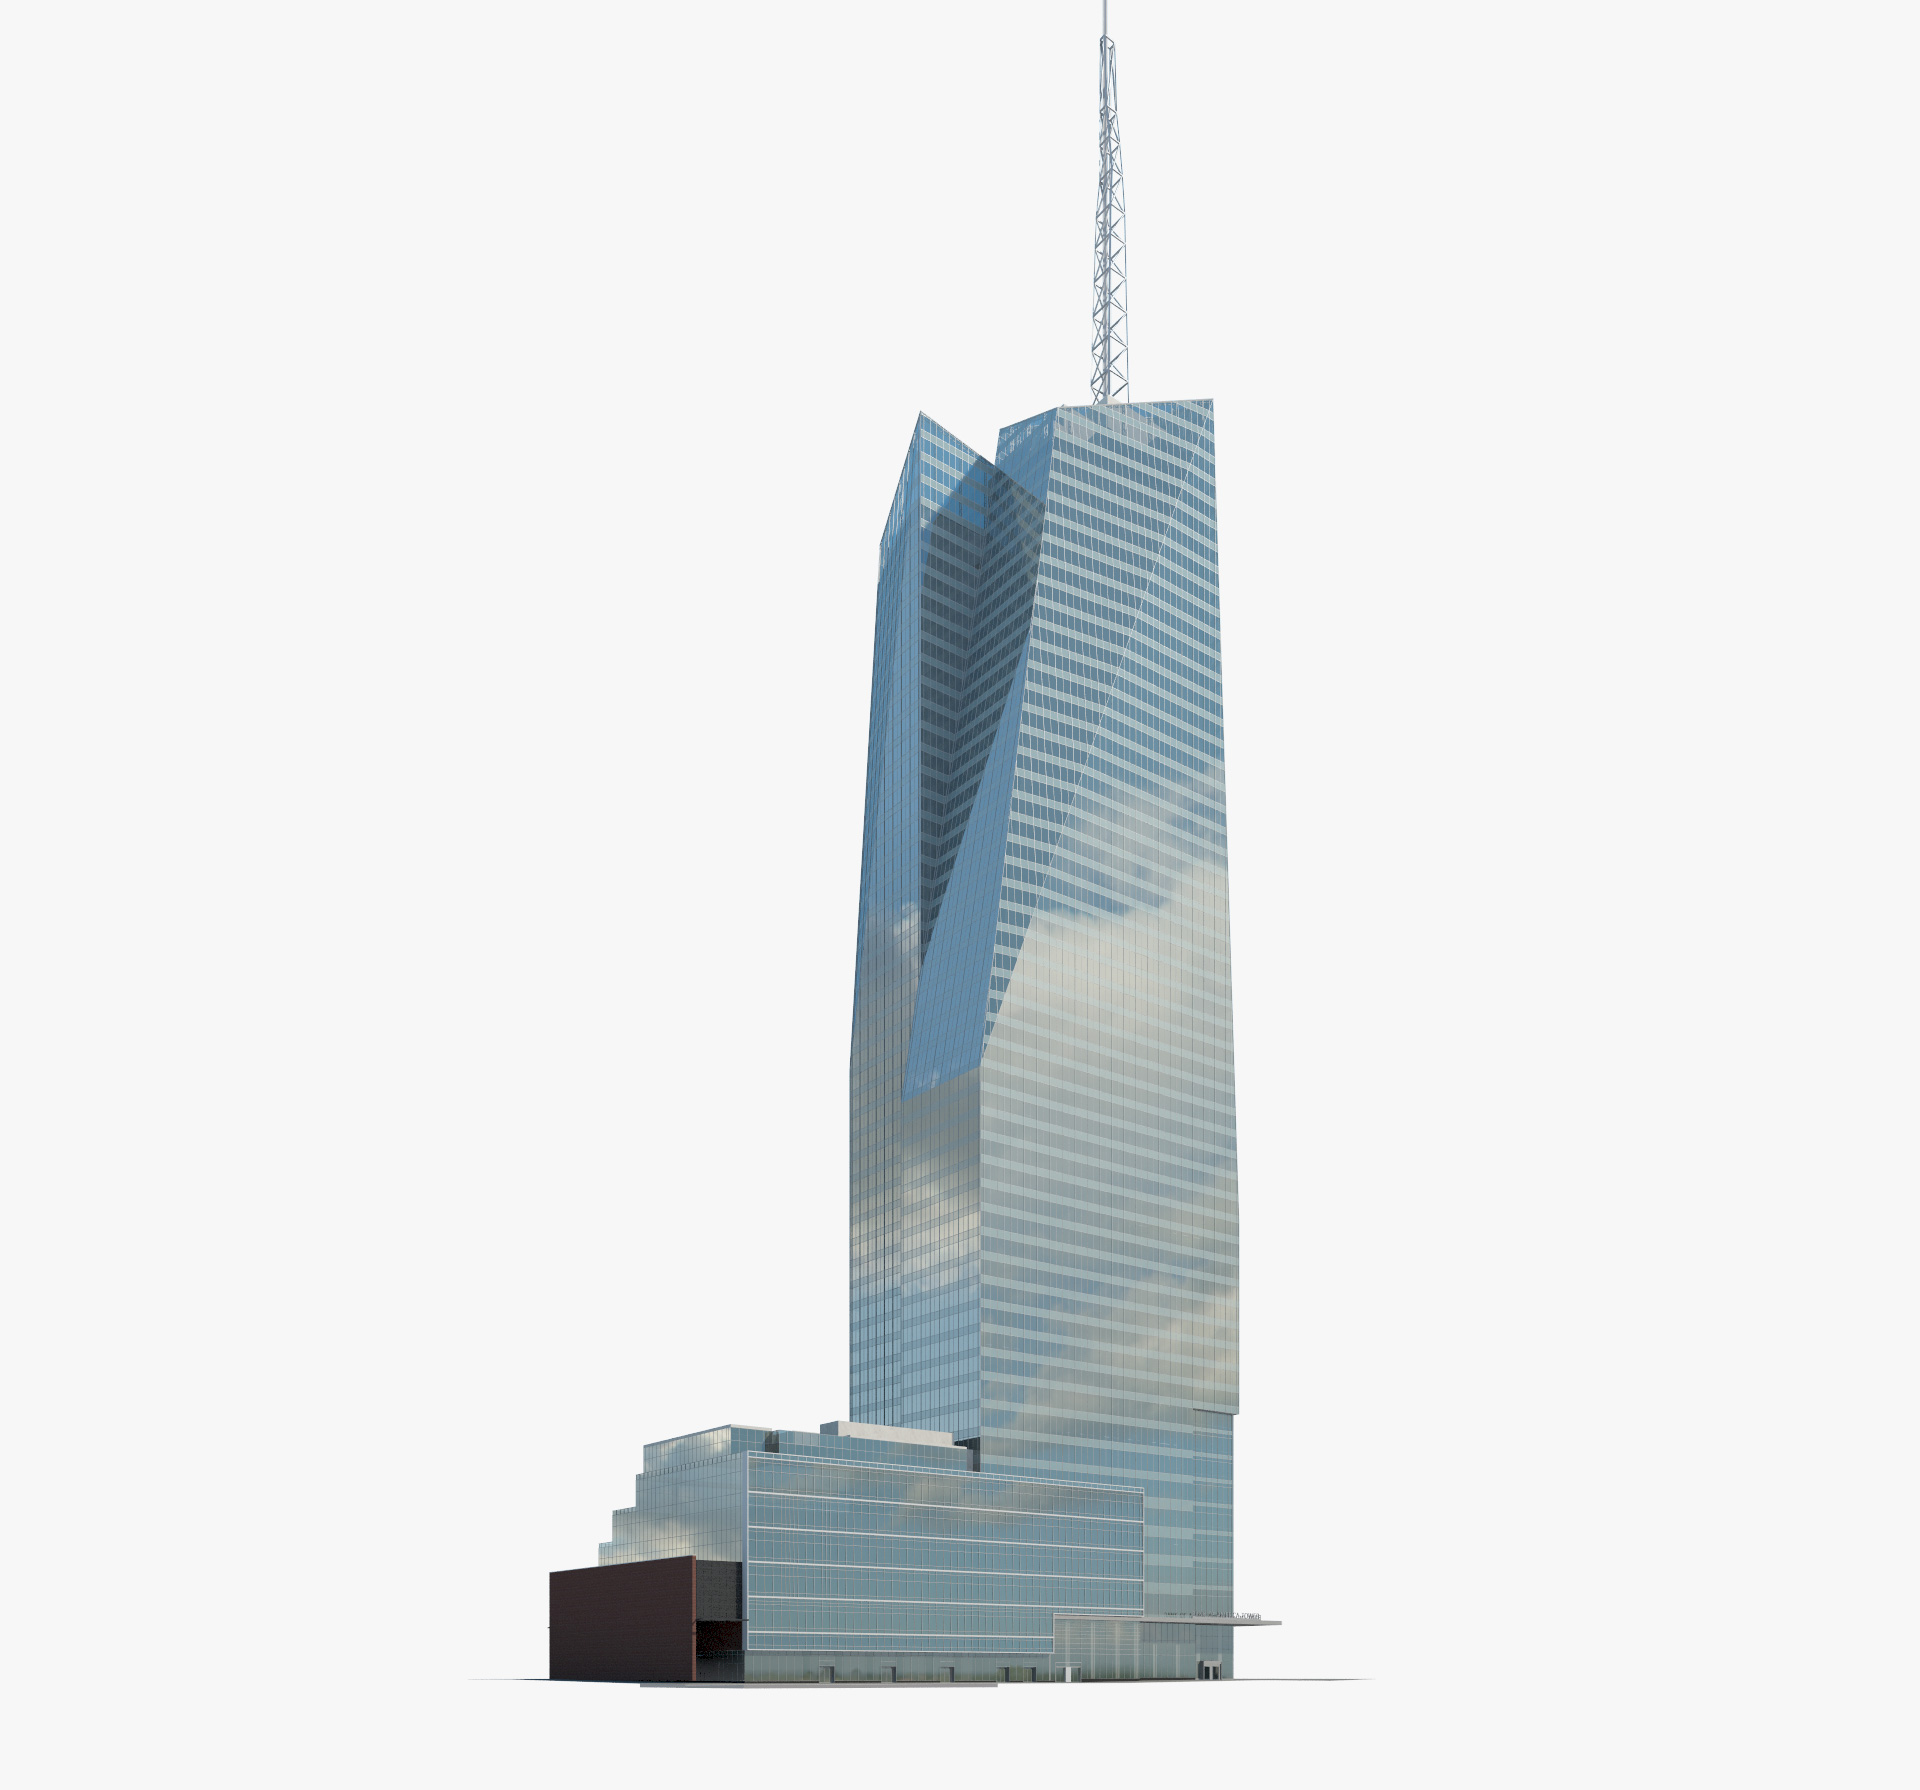 Tower of america clipart vector black and white Bank of America Tower (New York City) 3D model vector black and white